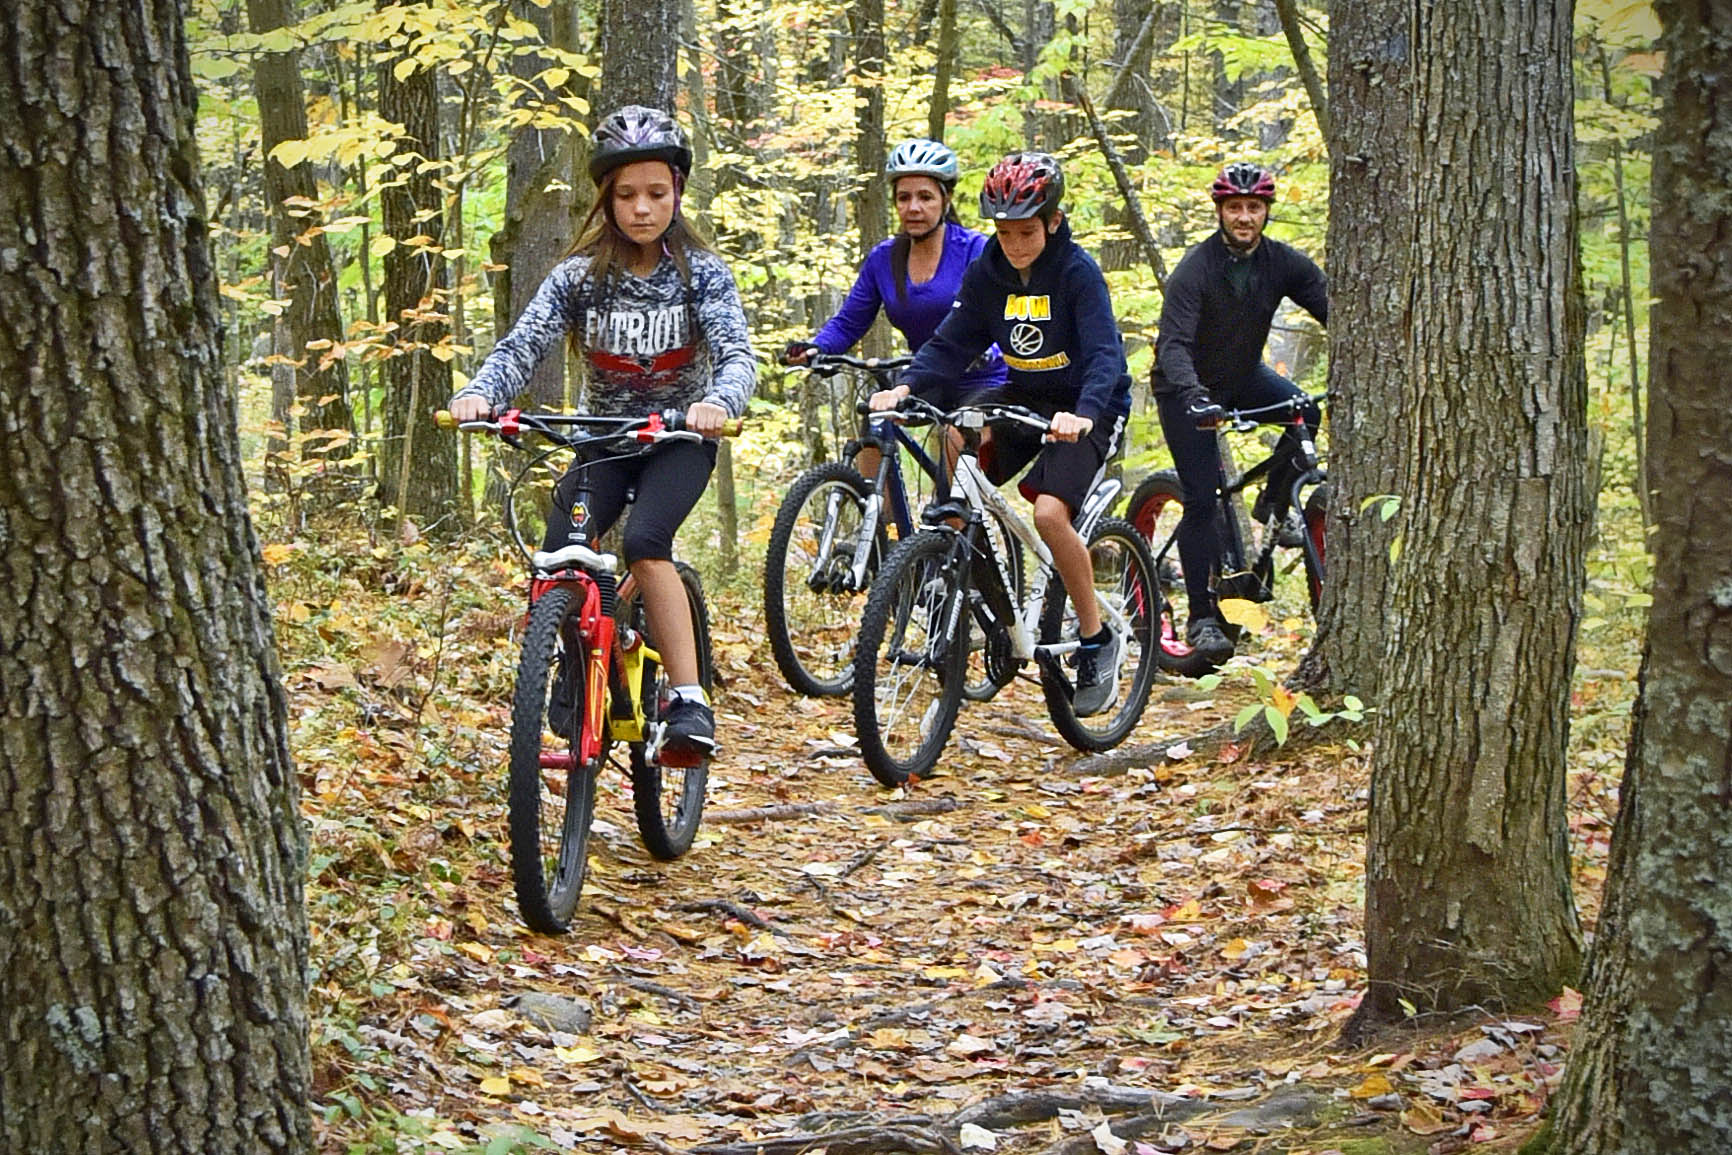 Family mountain biking on Bow trail